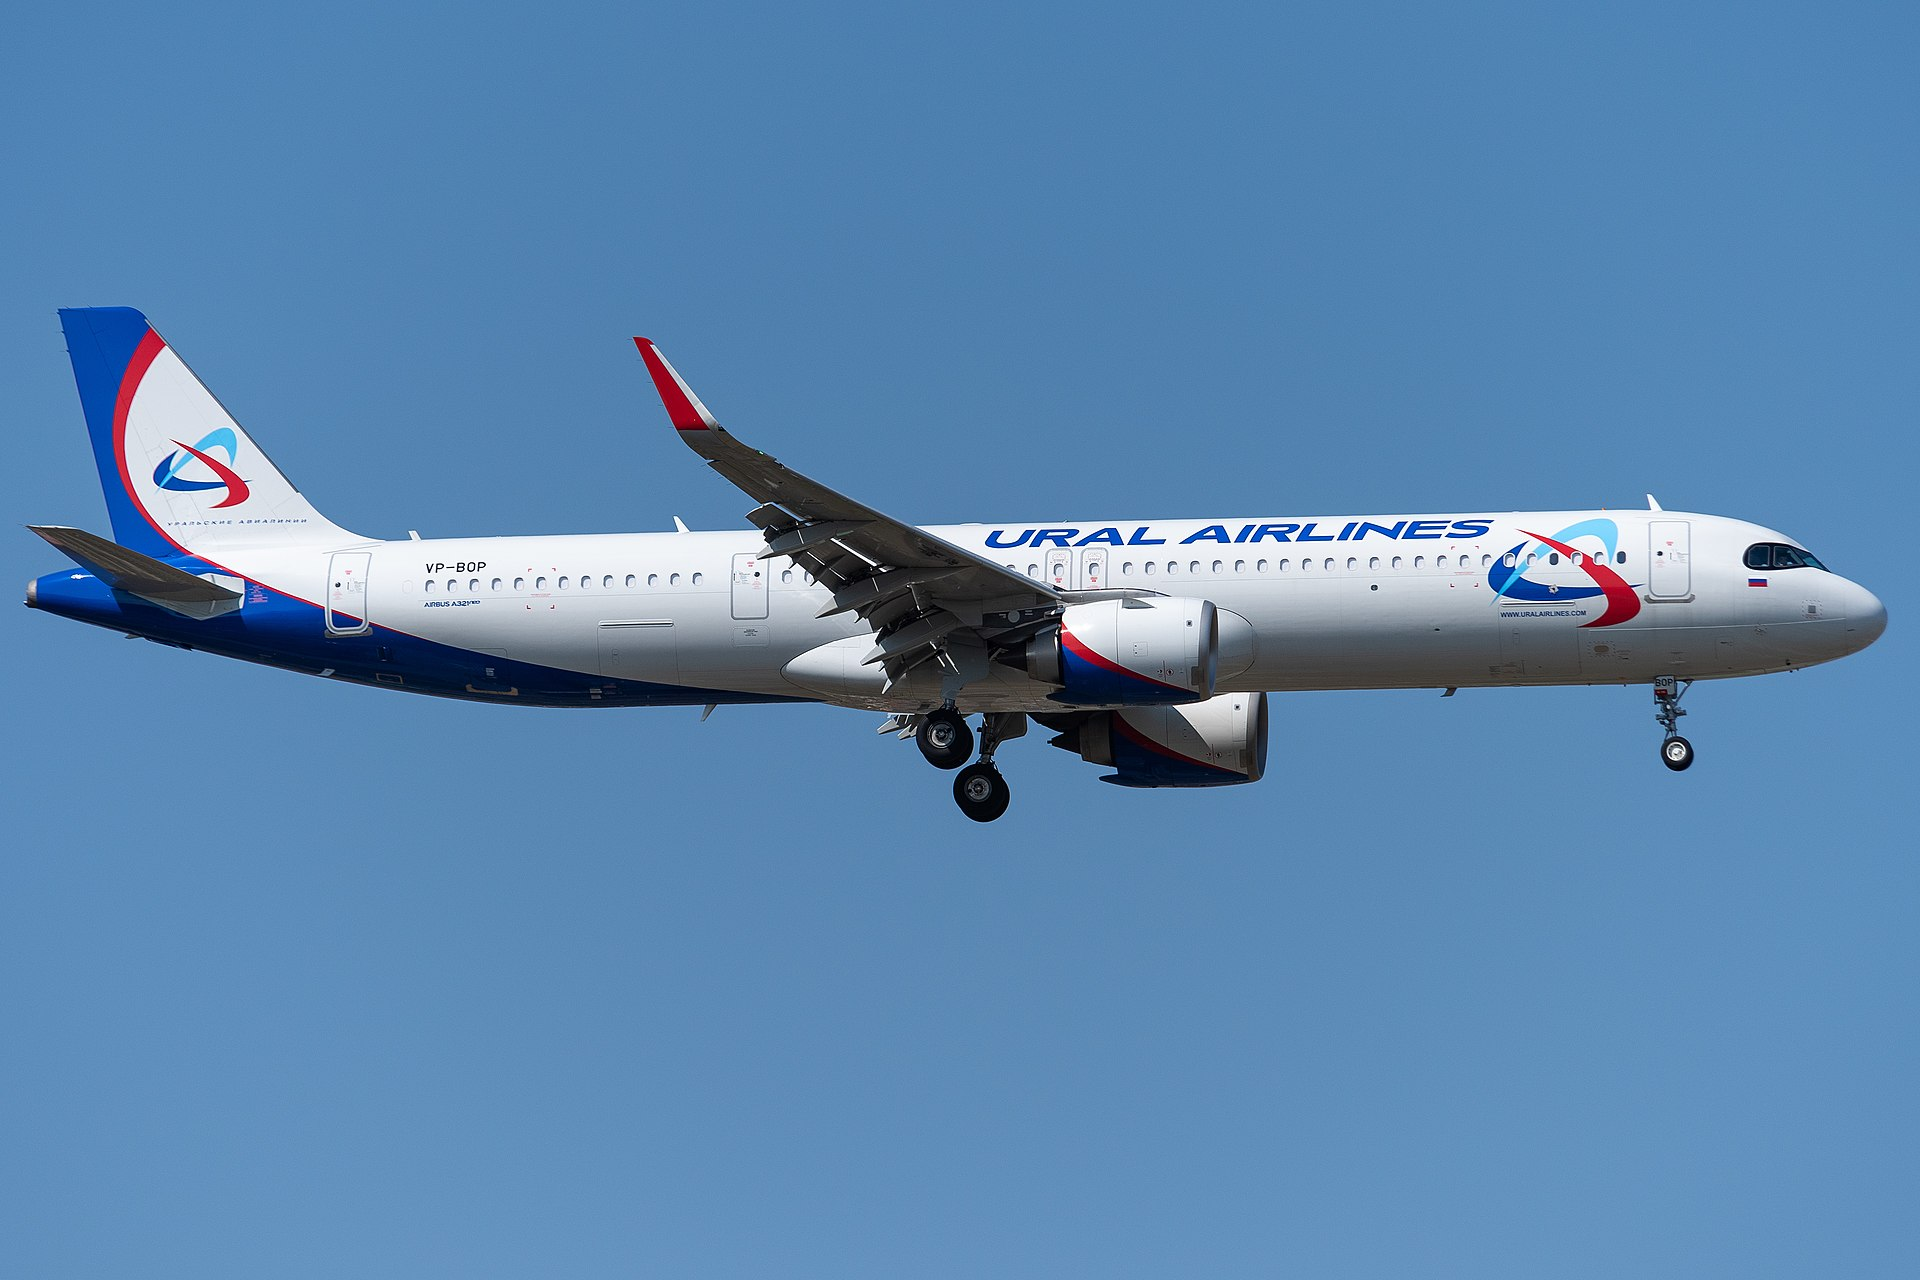 Europe's Biggest Airlines: #15 Ural Airlines